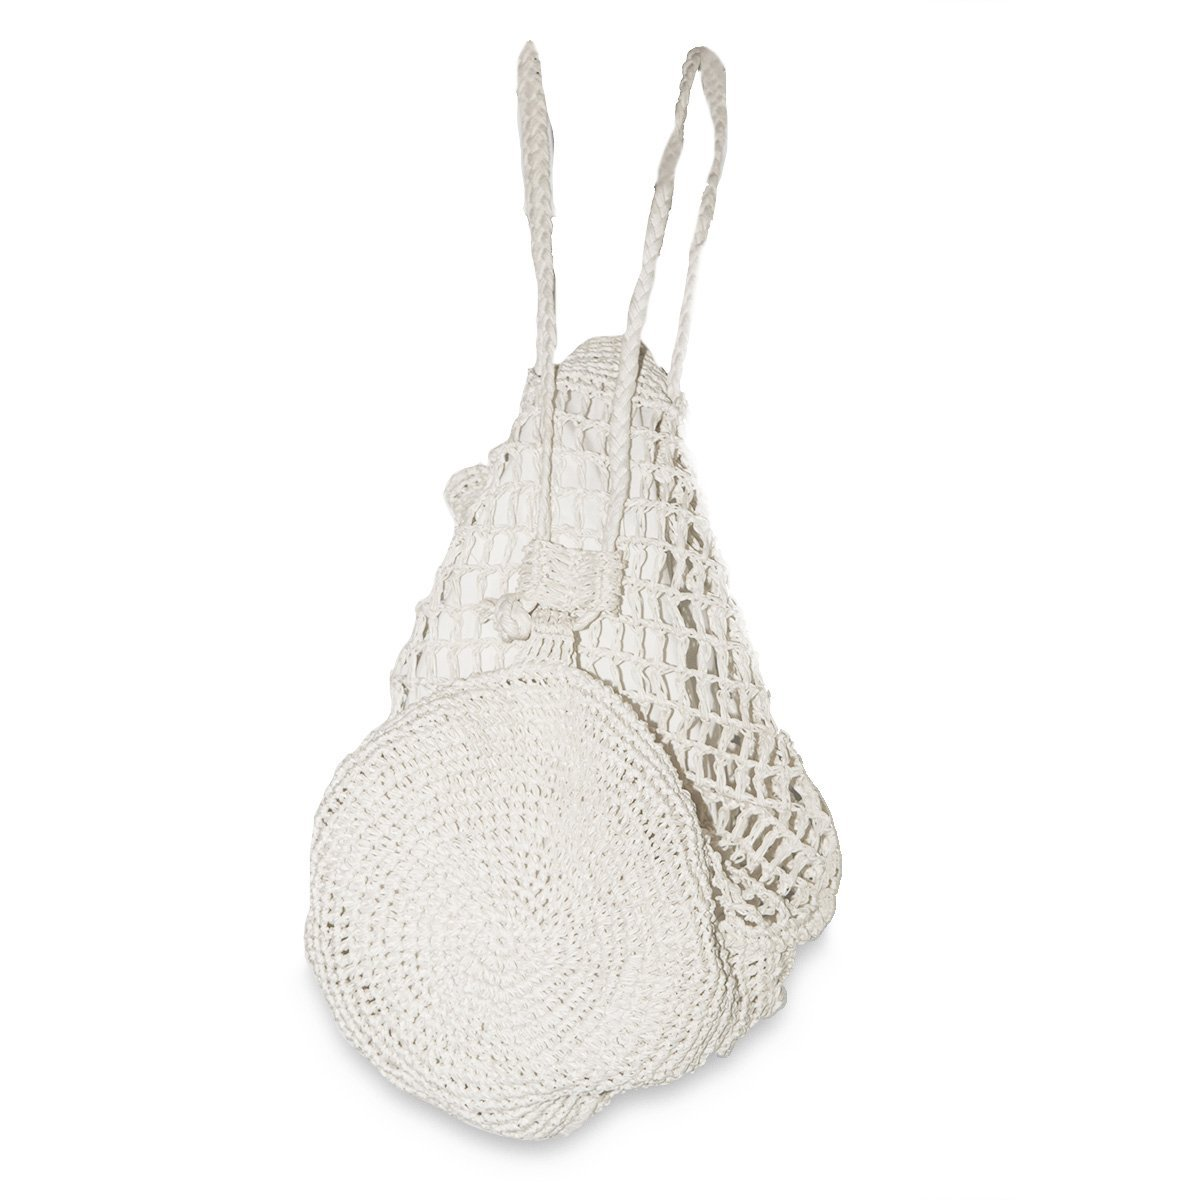 White Straw Macrame Backpack Handbag 5